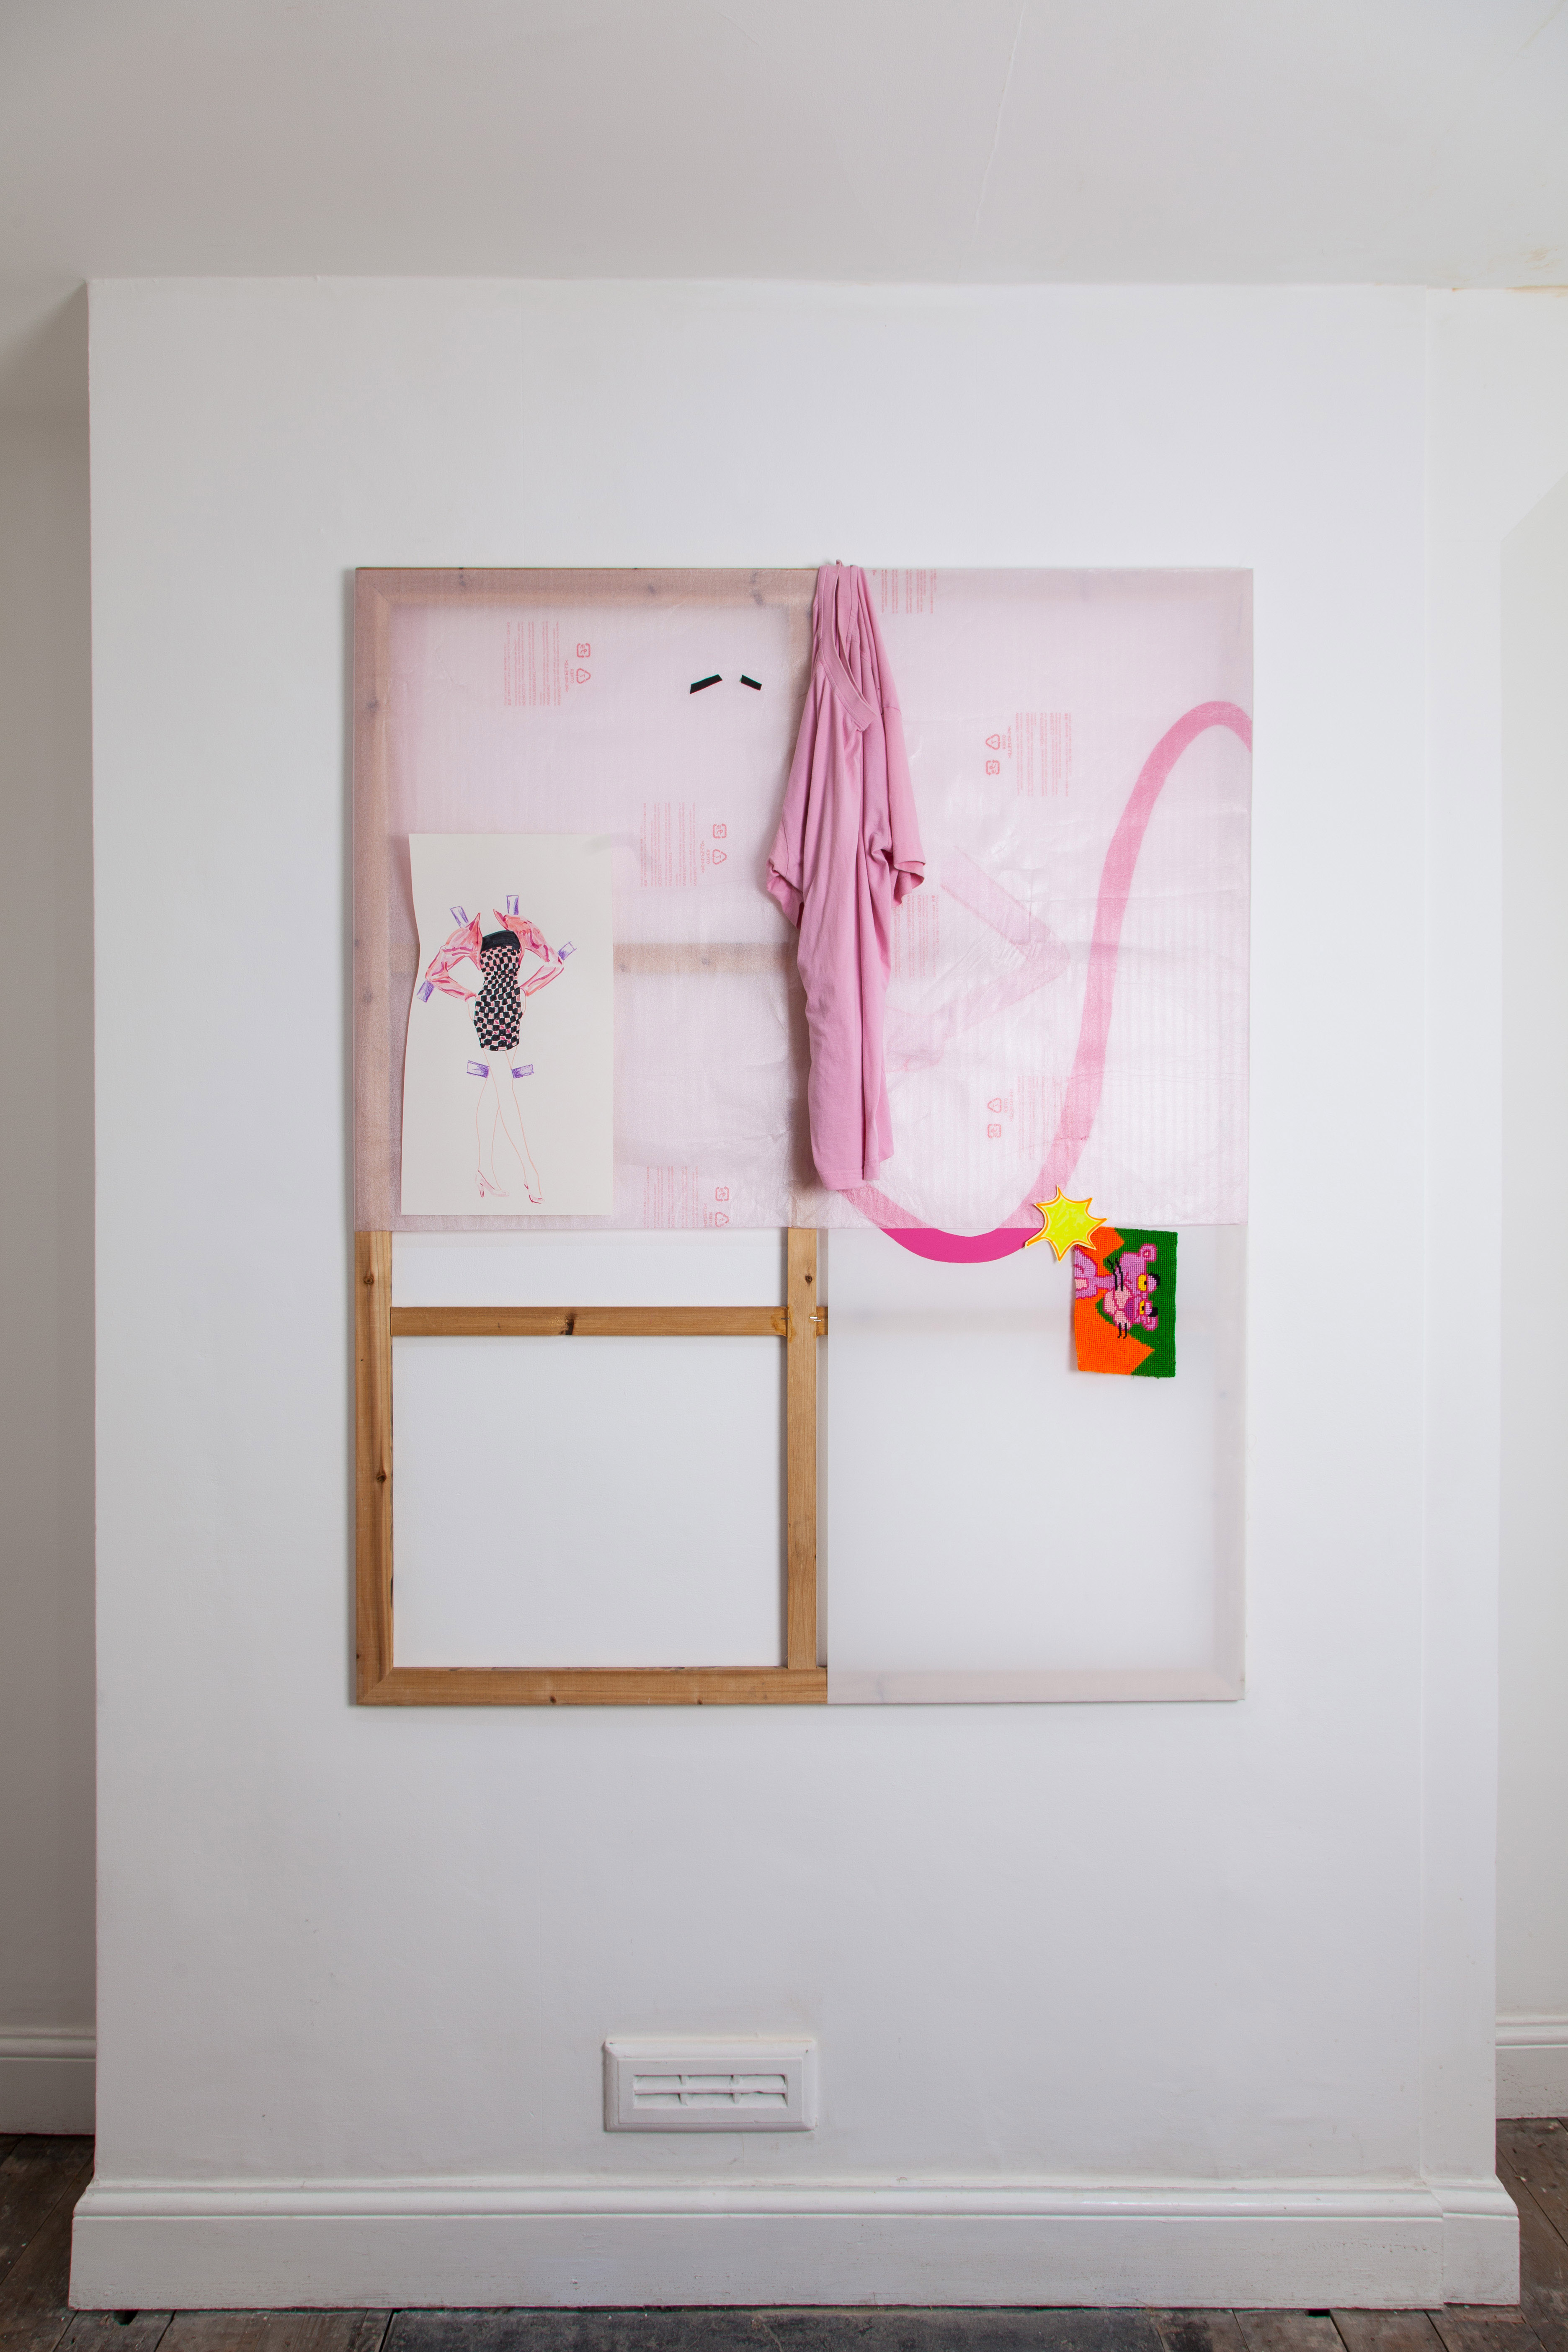 Installation shot of The Pink Panther Show 2018 at Gallery 46. Photograph by Ekphrasis © dateagleart 2018 _2 1